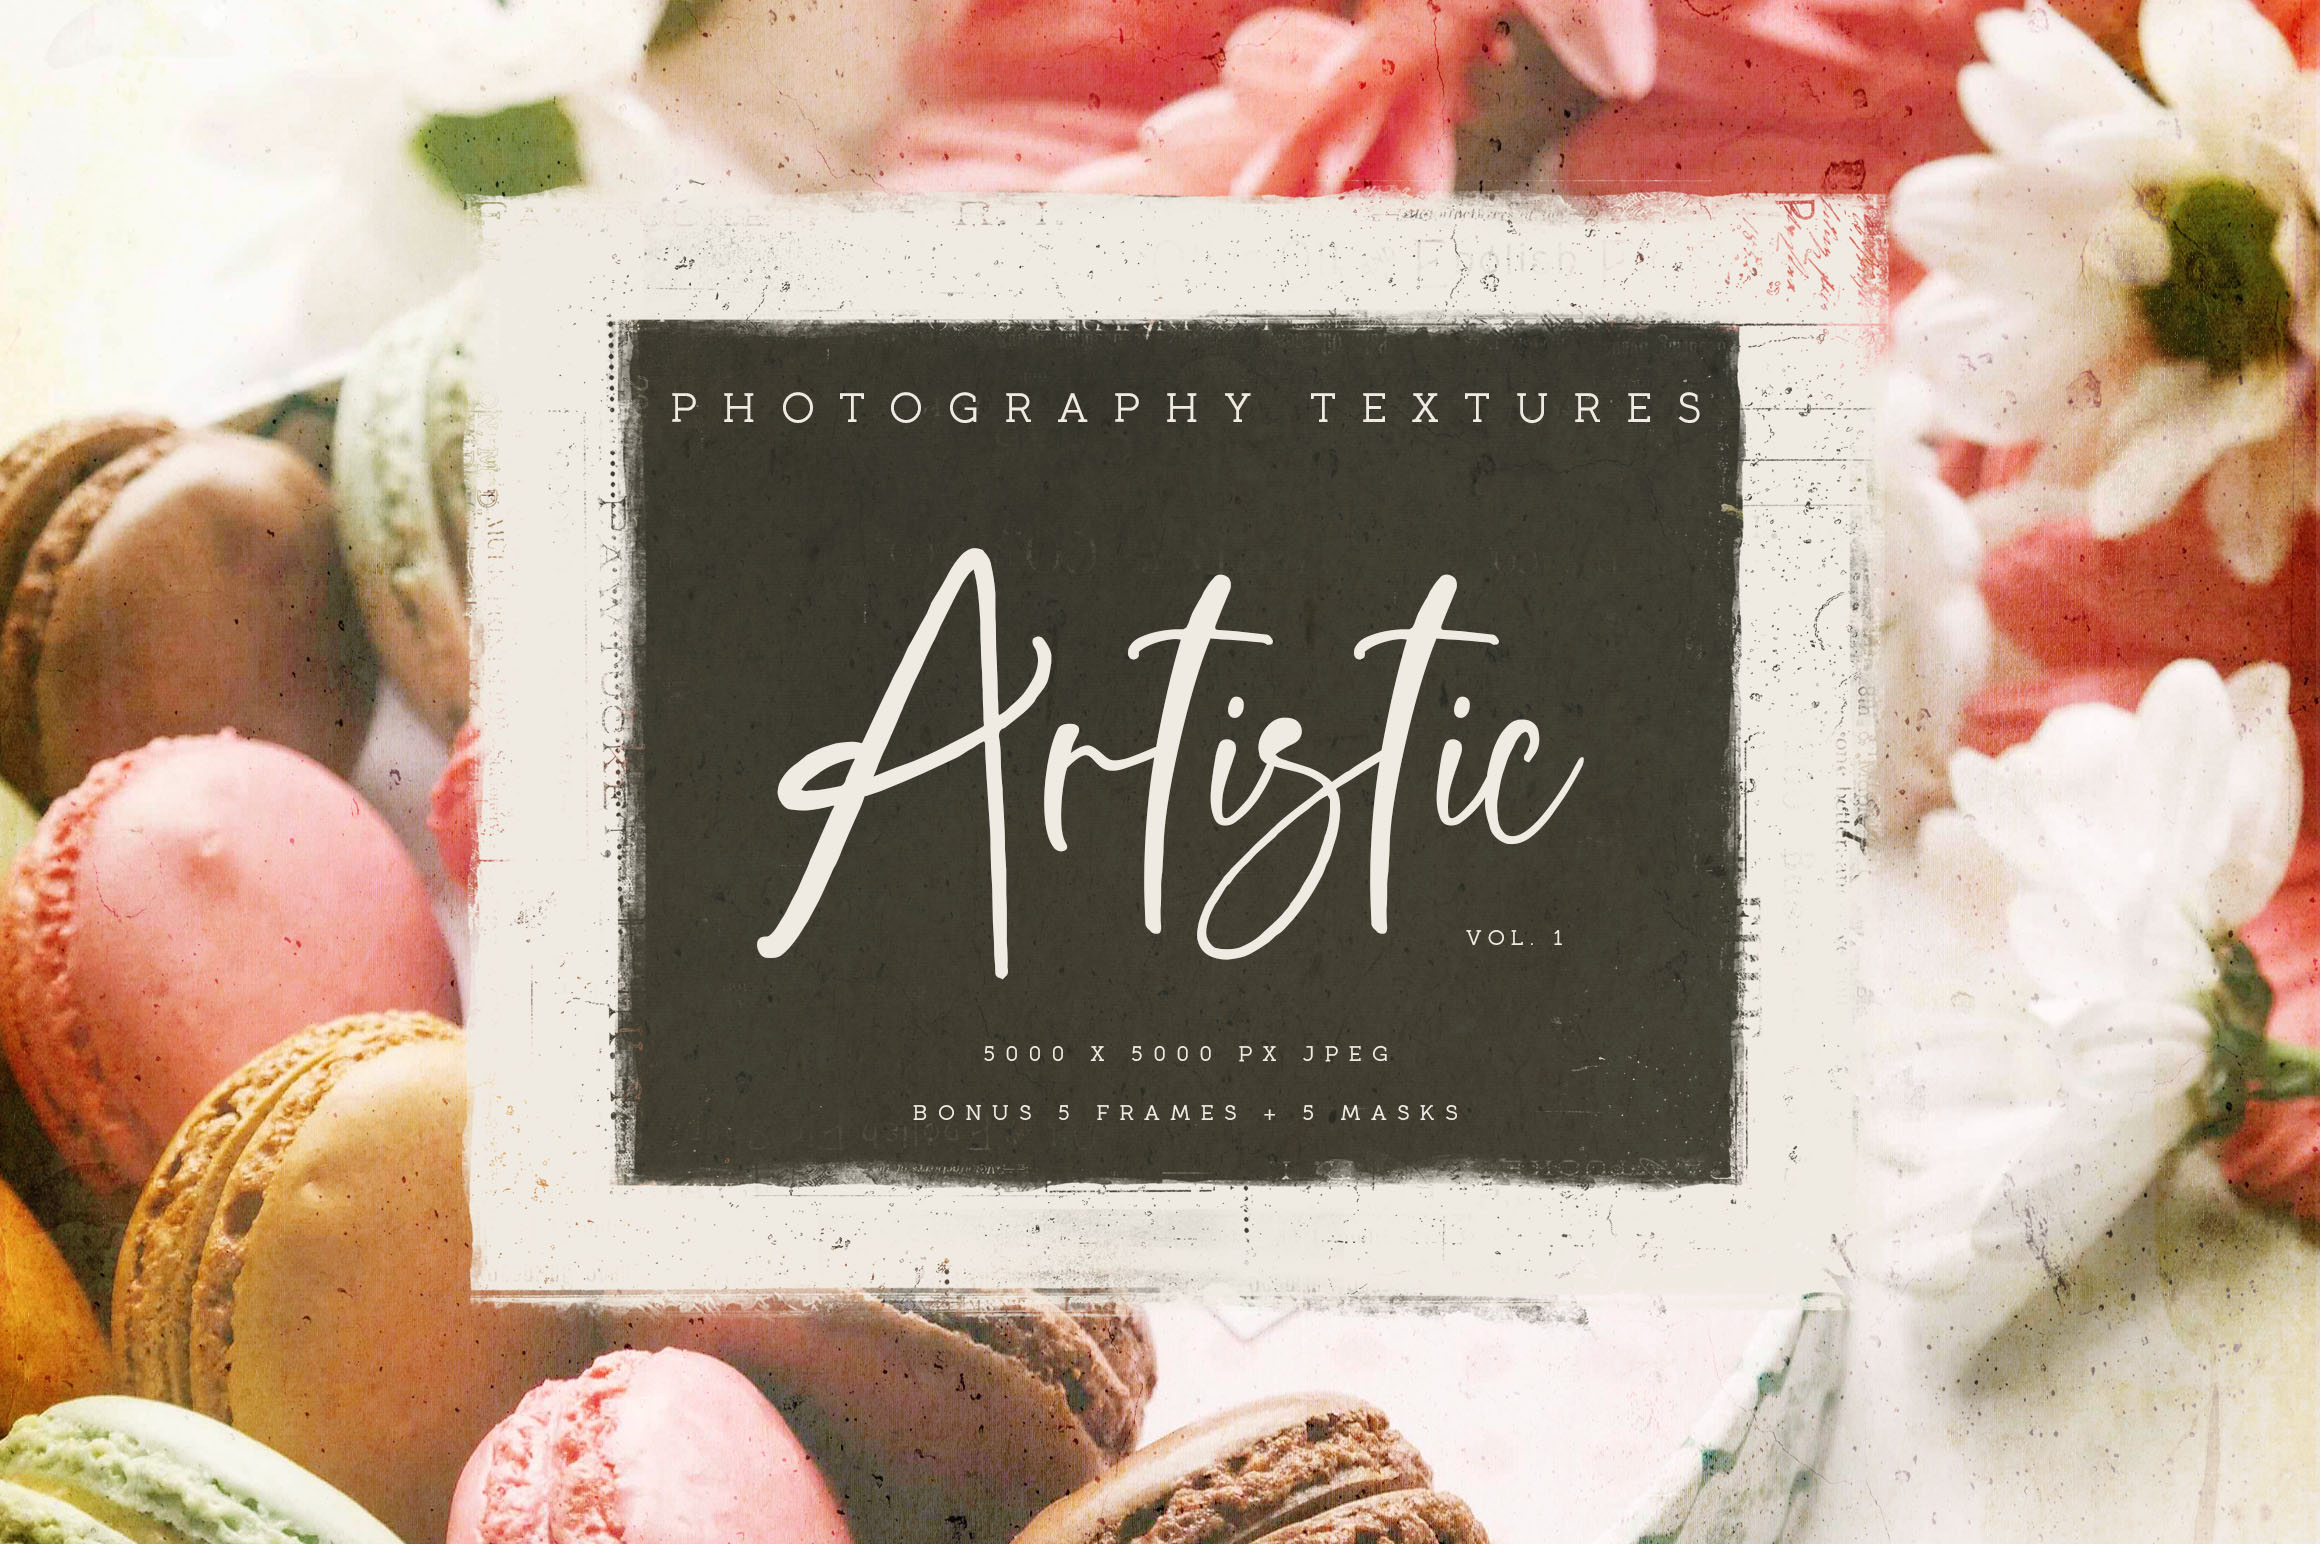 Photography Texture - Artistic vol.1 example image 1